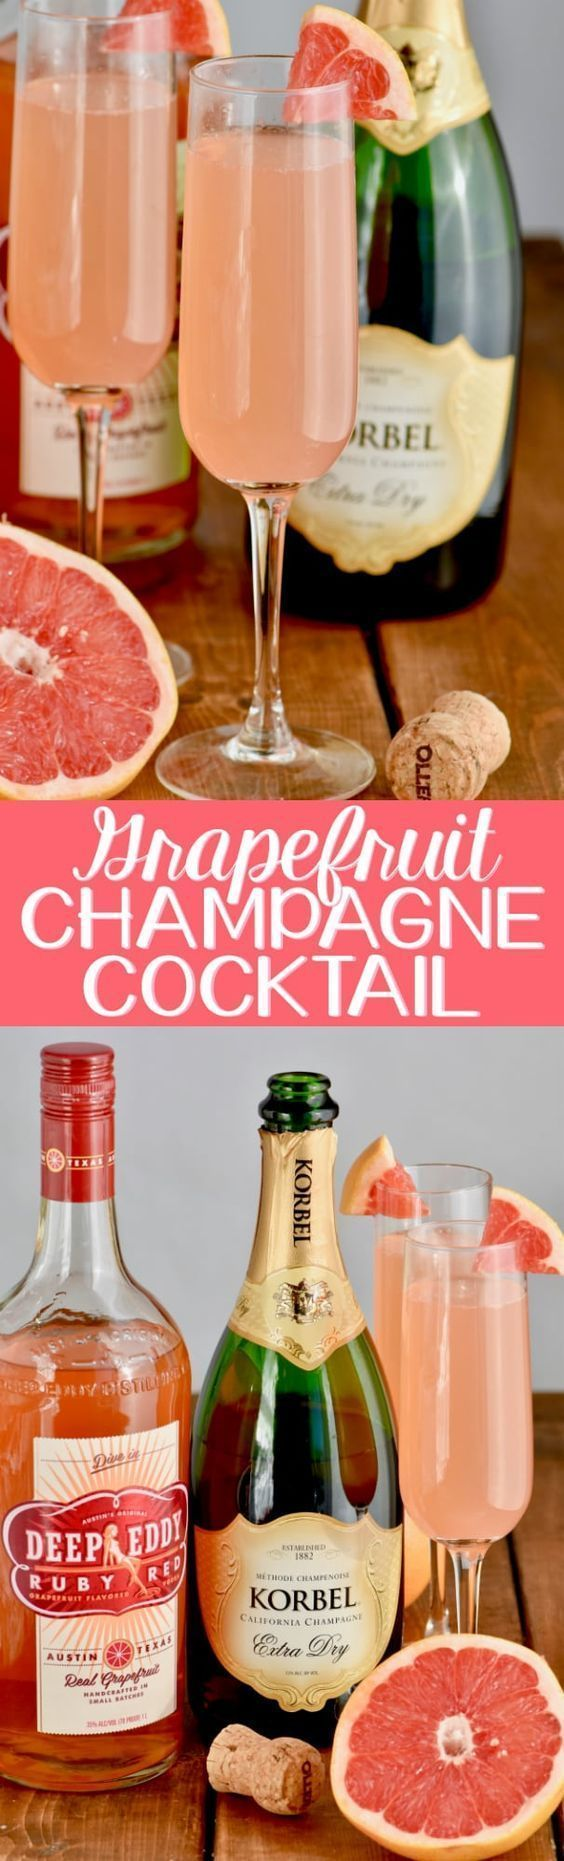 This Grapefruit Champagne Cocktail recipe is the perfect easy drink to celebrate with! This tops the list of the best pink champagne cocktails. Made with champagne, vodka, and juice this is an easy cocktail that is amazing for summer or any time of year that you need a little bubbly! #Champagne #cocktailrecipes